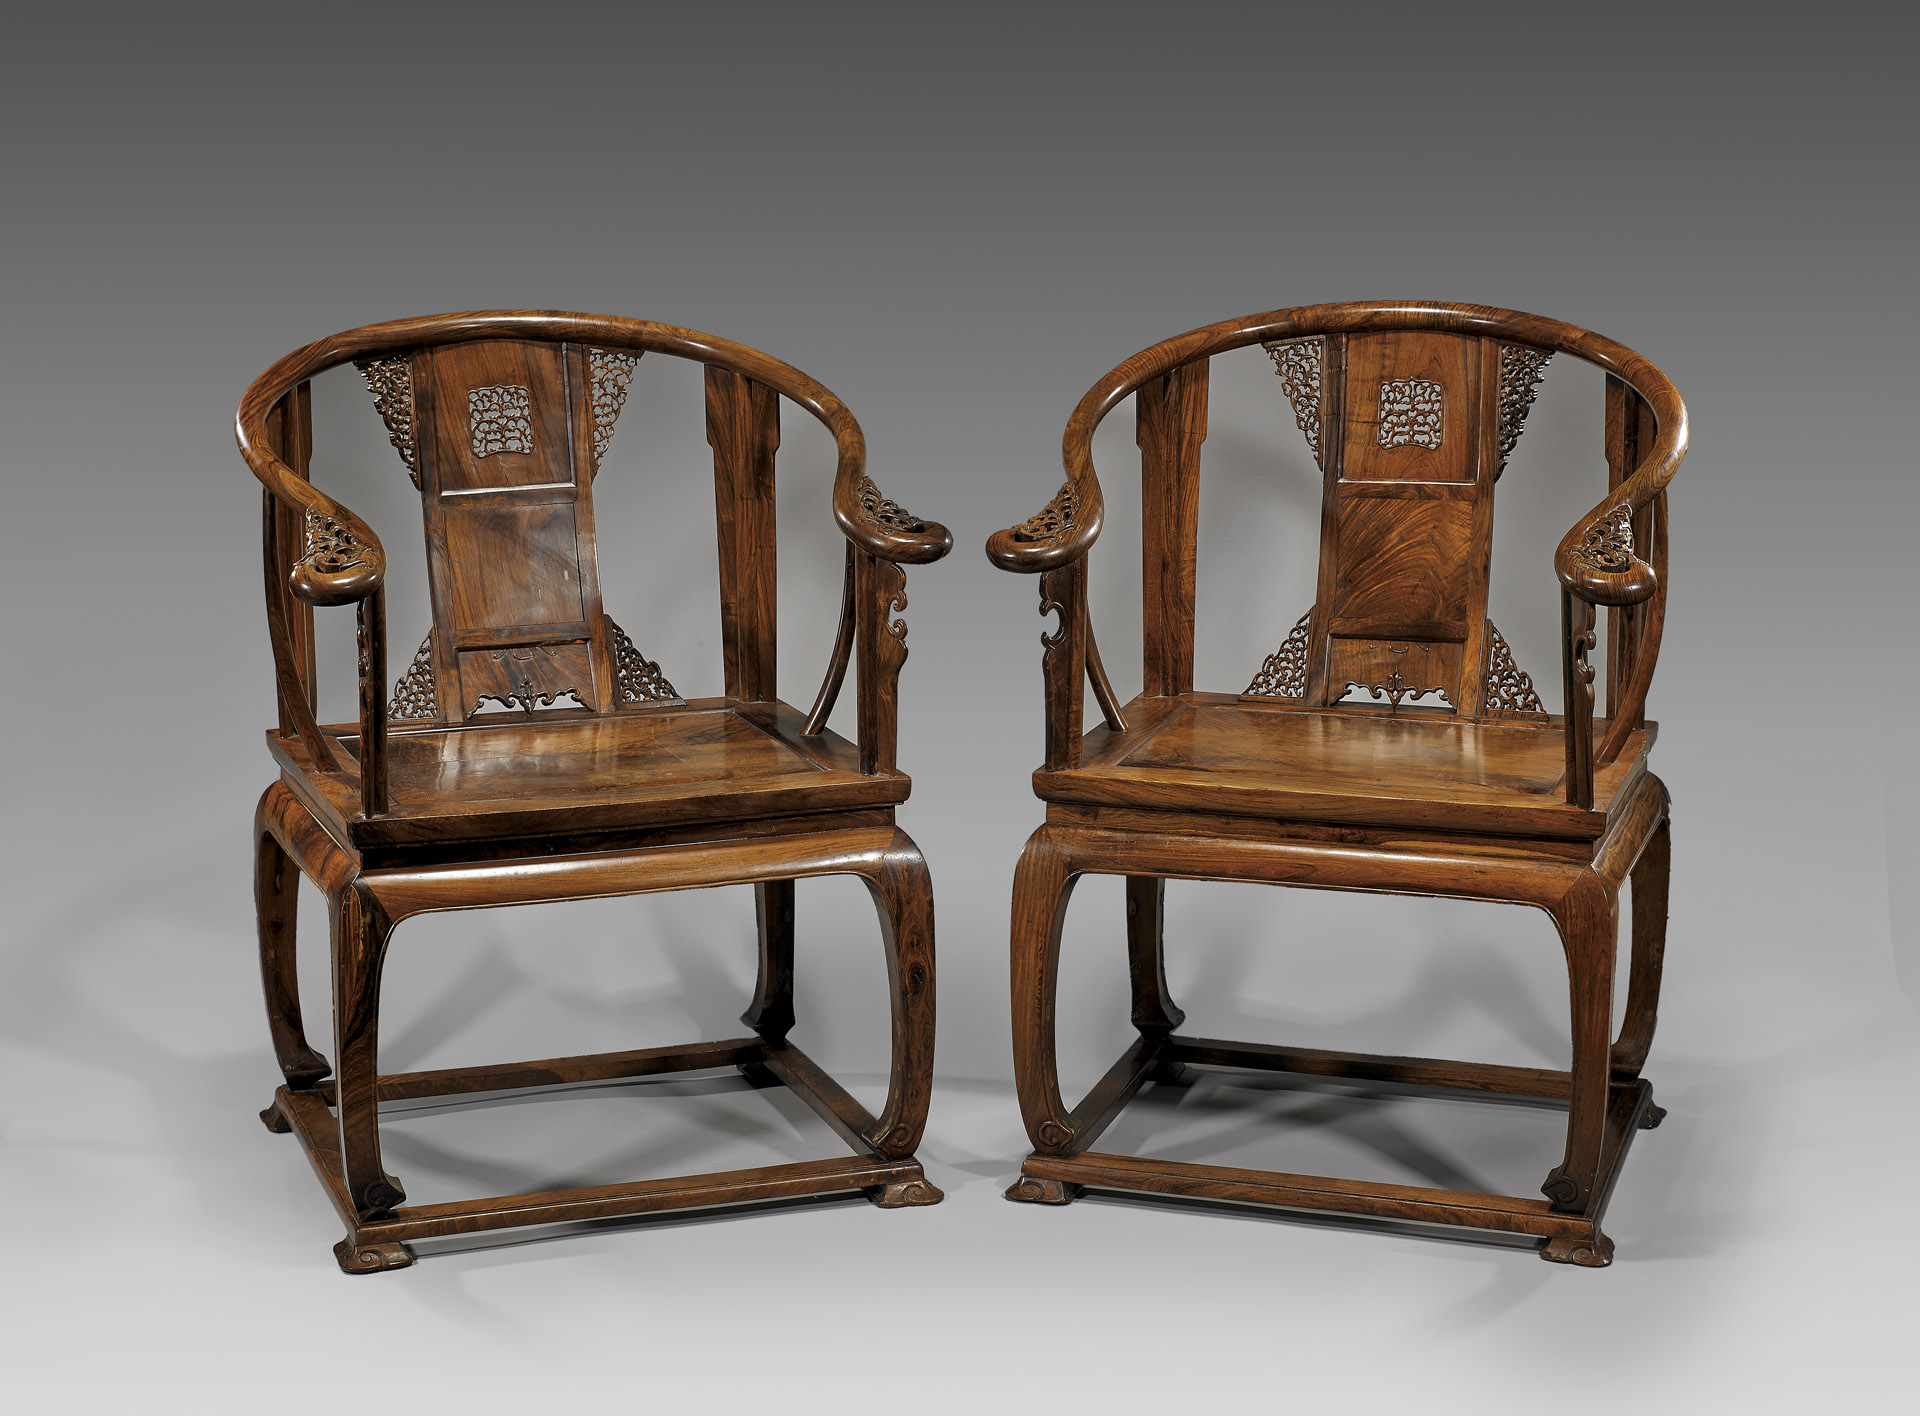 This Antique Pair Of Chinese Carved Huanghuali Wood Armchairs With Intricately Backsplat And Curvilinear Arms